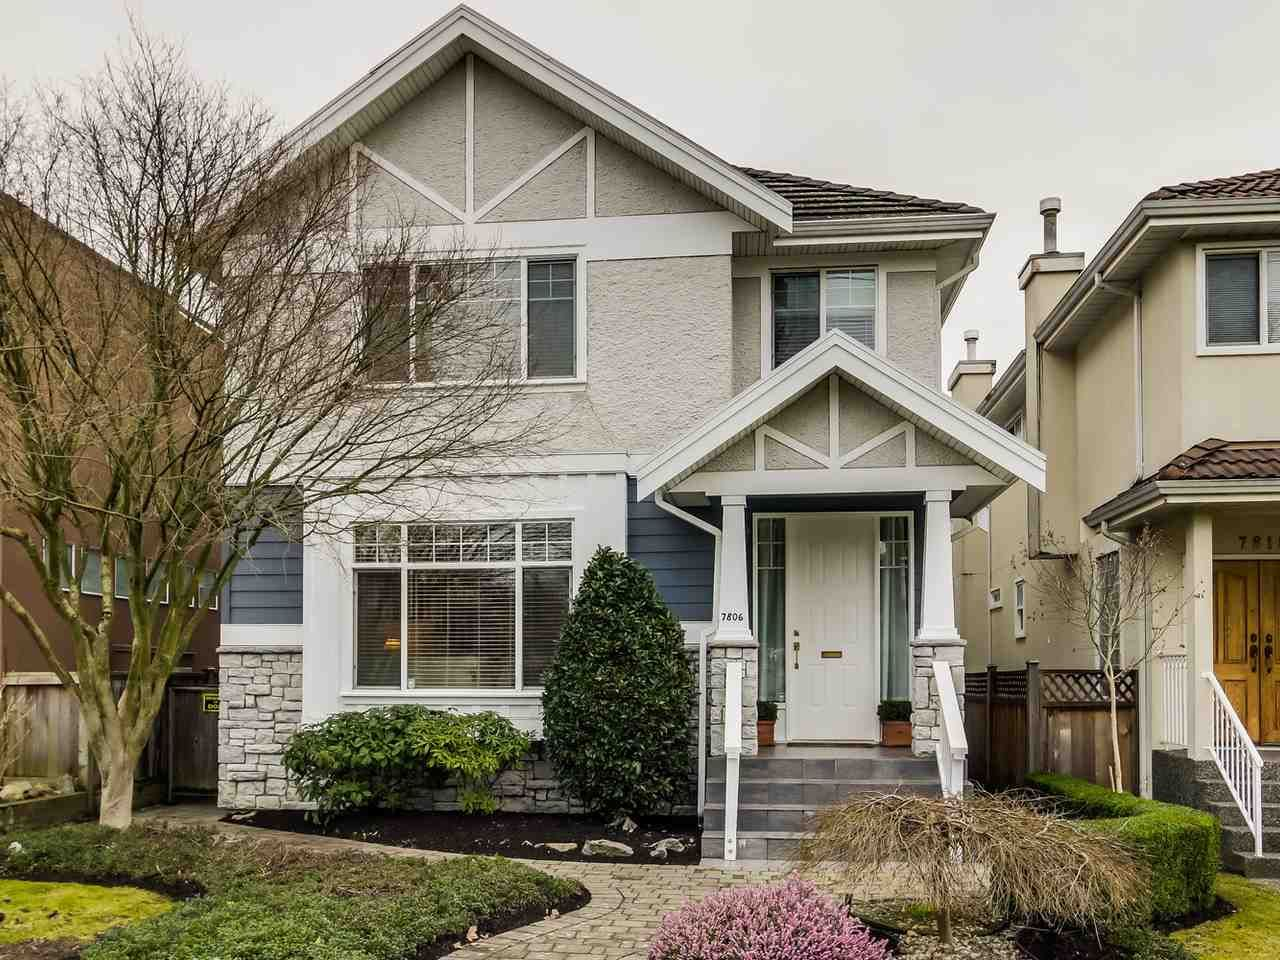 """Main Photo: 7806 HUDSON Street in Vancouver: Marpole House for sale in """"MARPOLE/SOUTH GRANVILLE"""" (Vancouver West)  : MLS®# R2028896"""